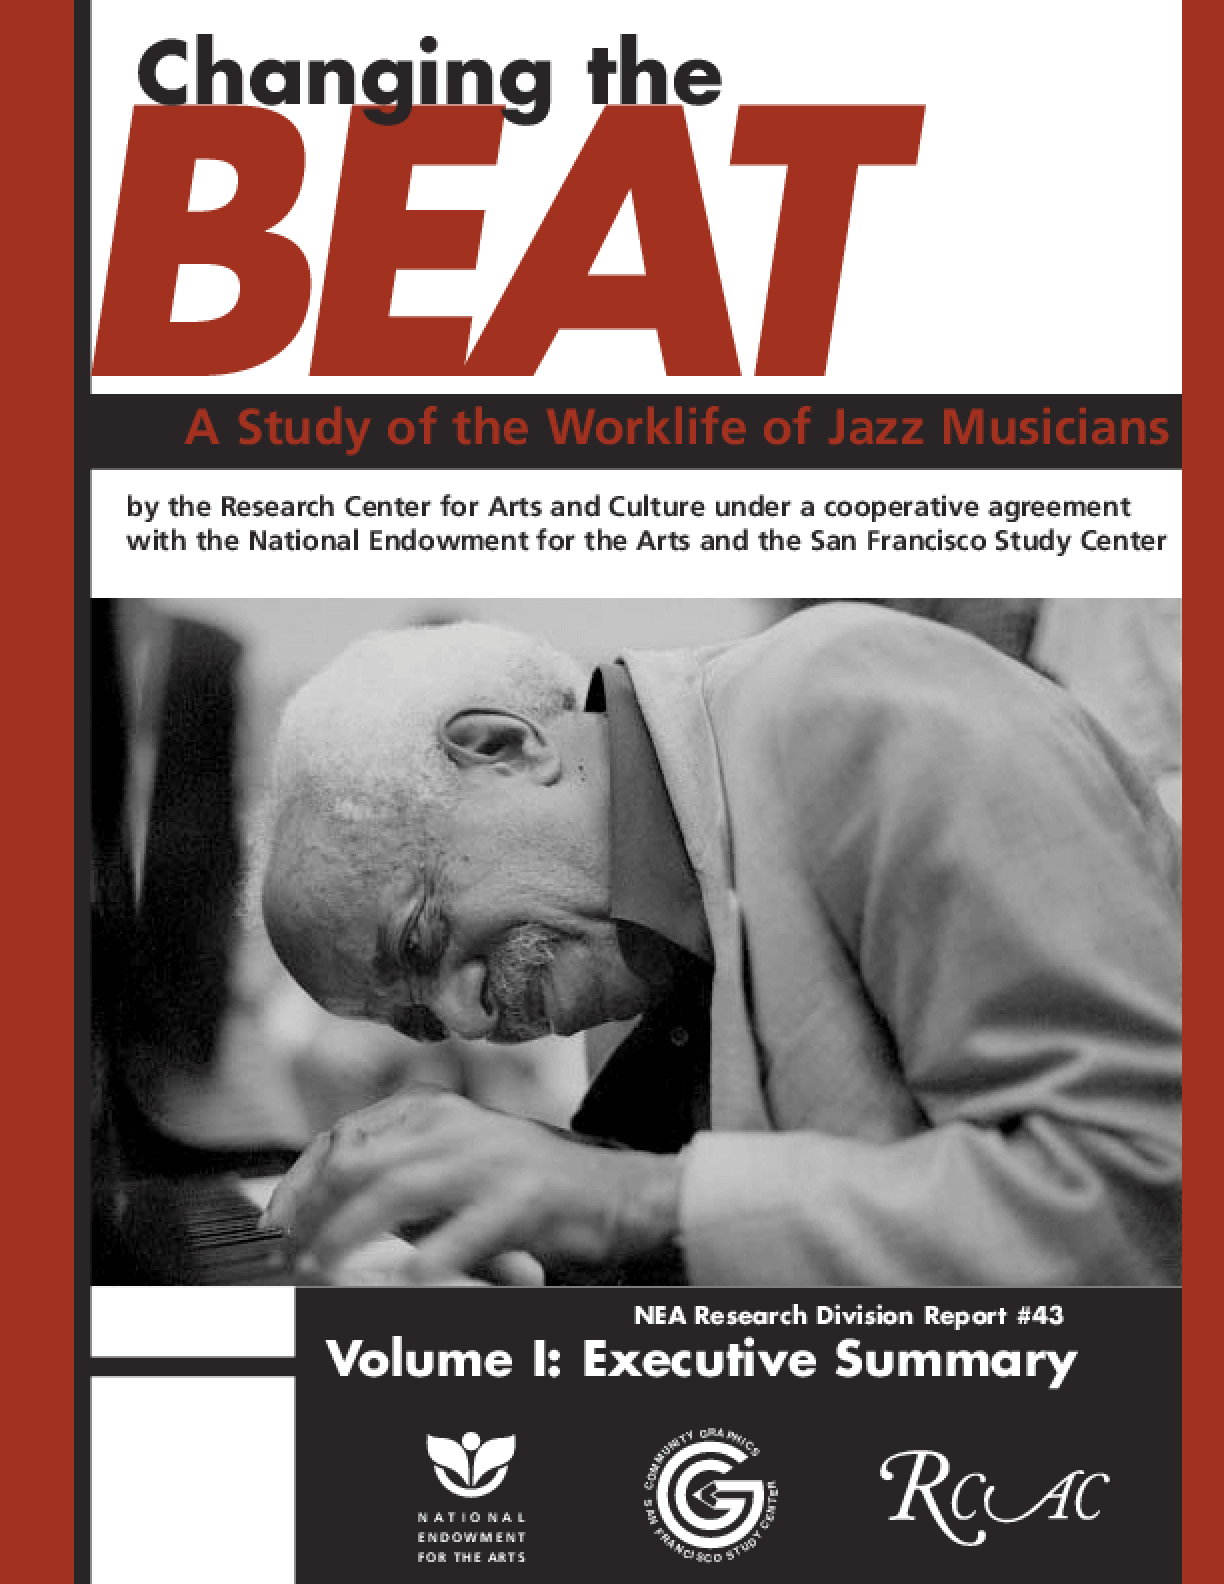 Changing the Beat: A Study of the Worklife of Jazz Musicians, Volume I: Executive Summary